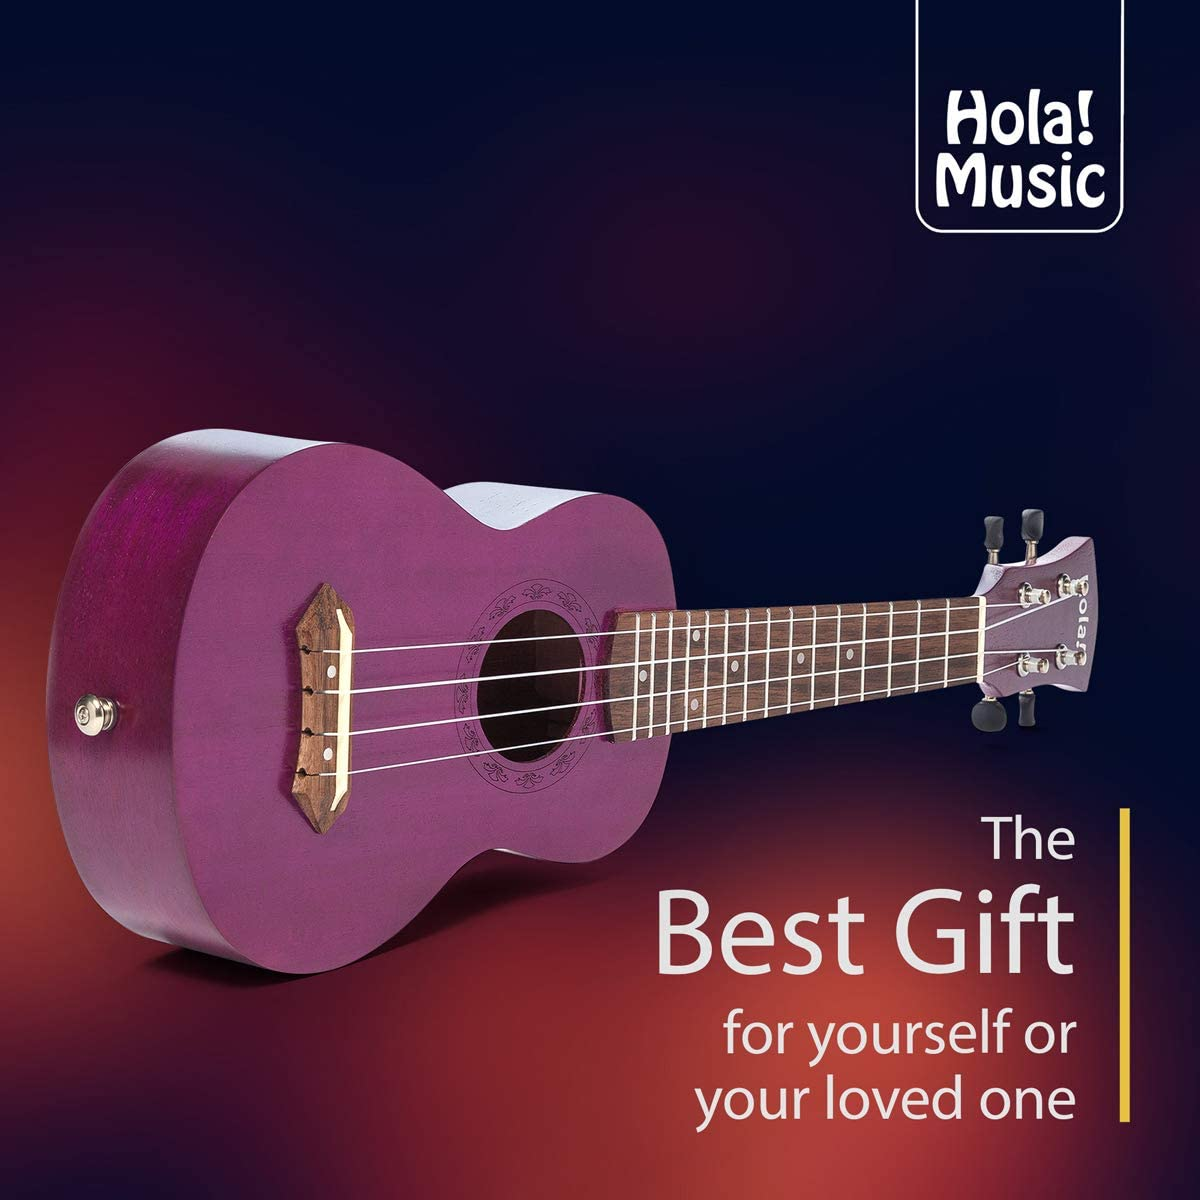 Hola Padded Gig Bag Red Music HM-121RD+ Deluxe Mahogany Soprano Ukulele Bundle with Aquila Strings Strap and Picks